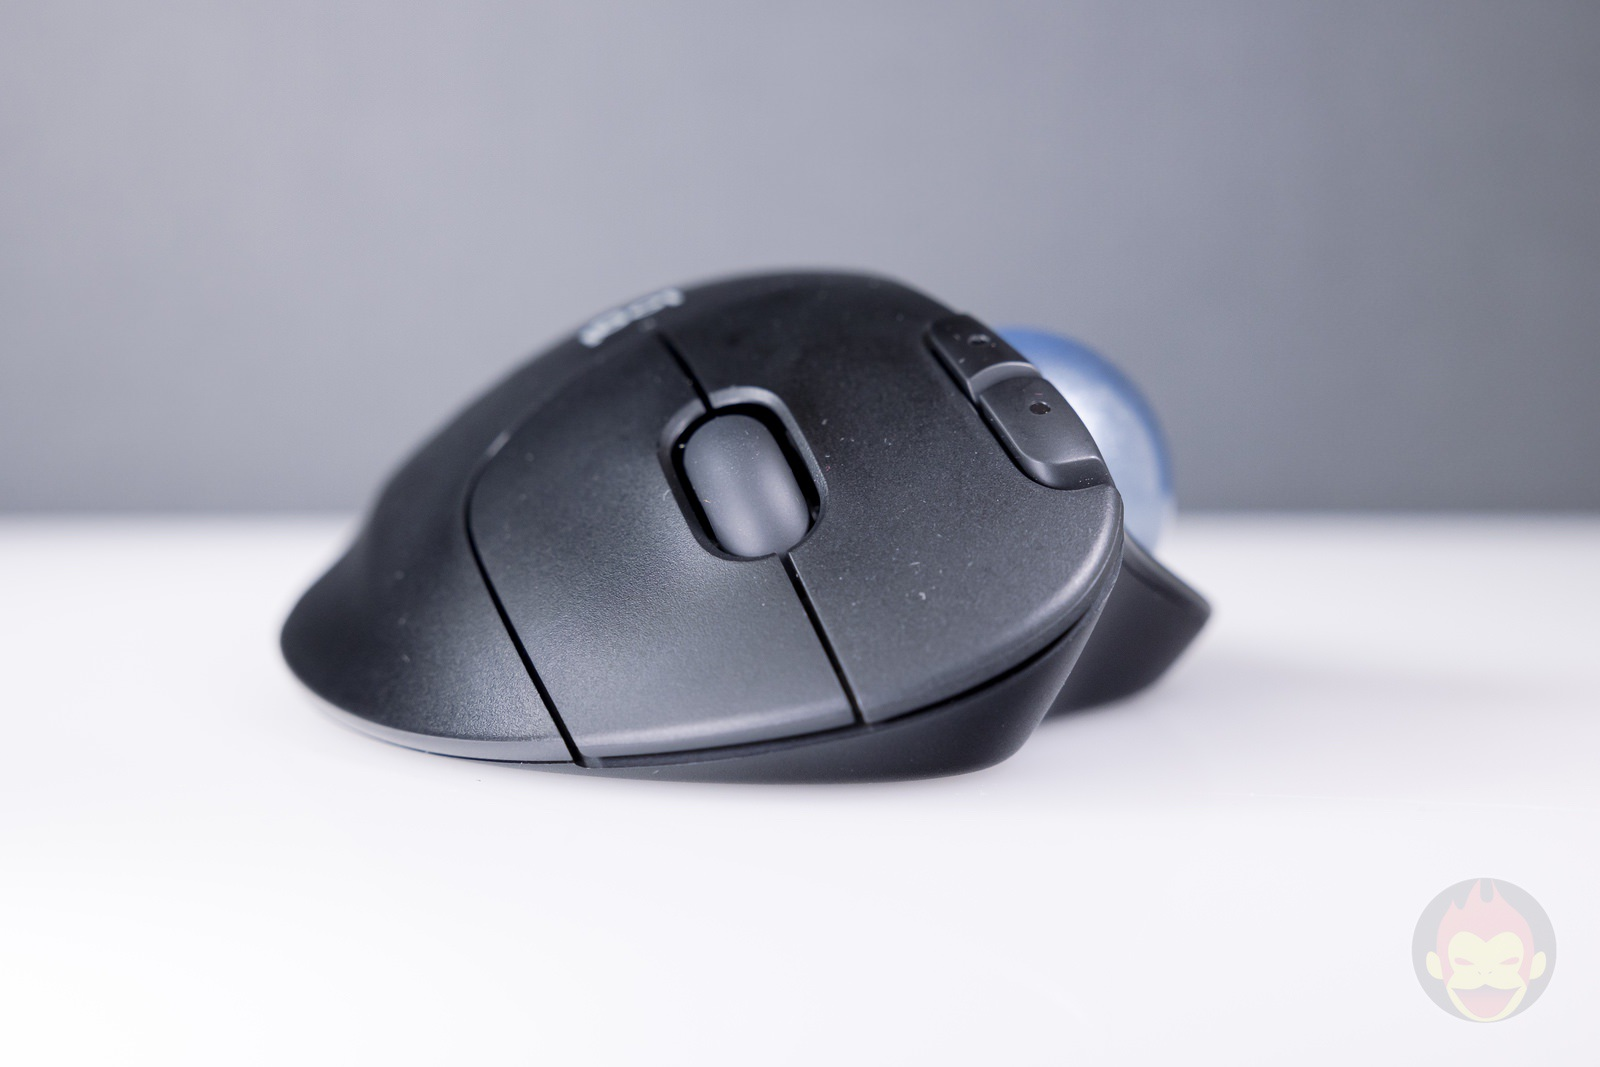 Logicool-ERGO-M575S-Trackball-Hands-on-09.jpg